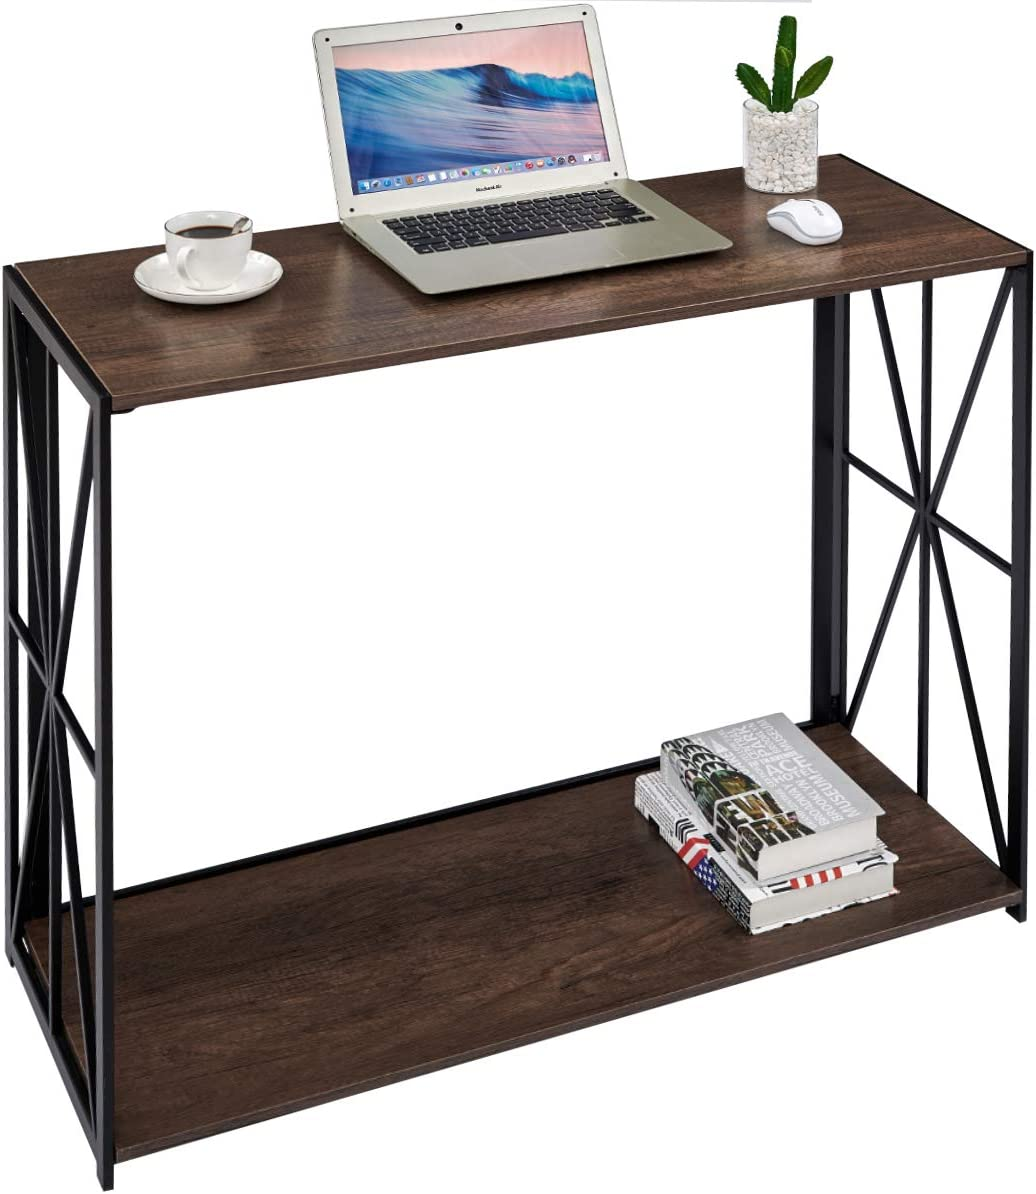 Console Sofa Table 2 Tier Folding Wall Table for Entryway, No-Assembly Home Office Computer Desk Living Room TV Entrance Table with Shelf, Industrial Rustic Brown Kitchen Bar Table with Metal X-Frame